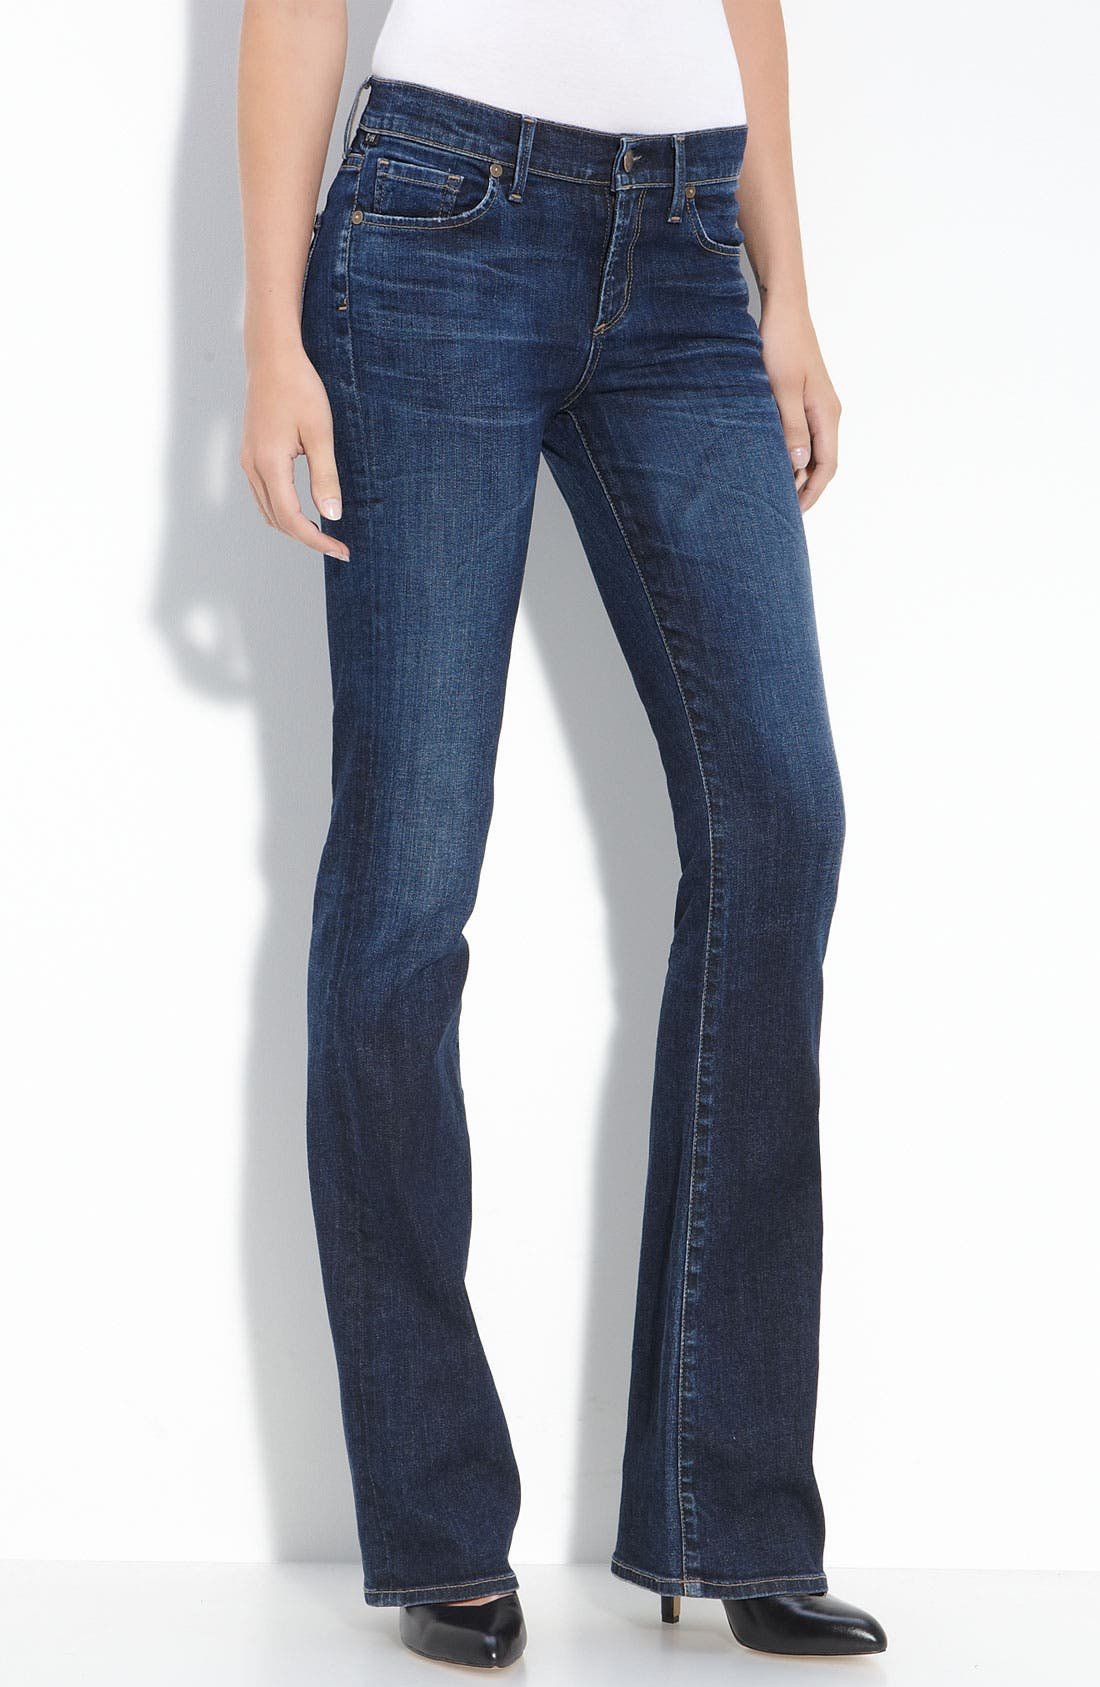 Alternate Image 1 Selected - Citizens of Humanity 'Kelly' Bootcut Denim Jeans (Spectrum Wash)